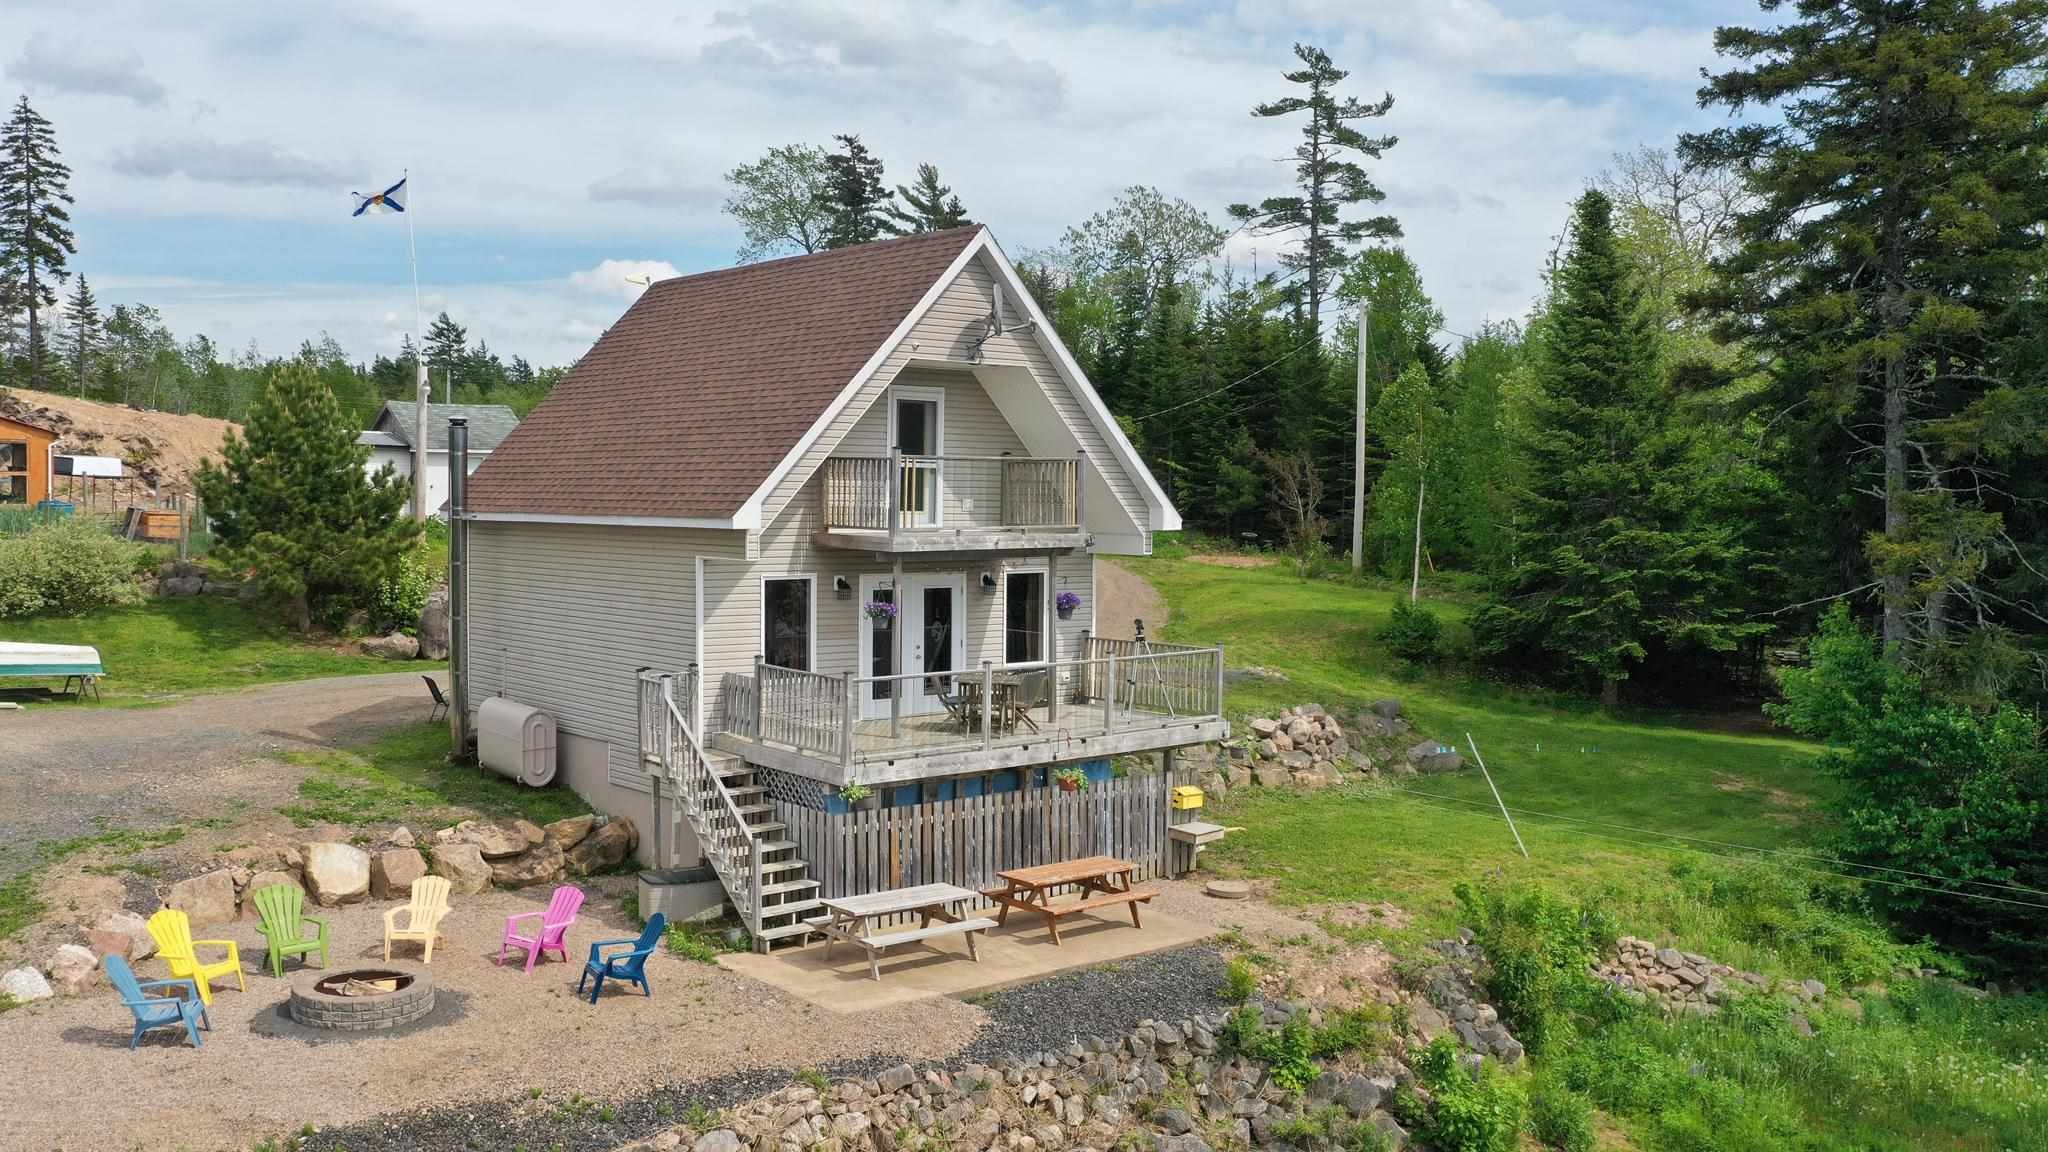 Main Photo: 415 Loon Lake Drive in Loon Lake: 404-Kings County Residential for sale (Annapolis Valley)  : MLS®# 202114148